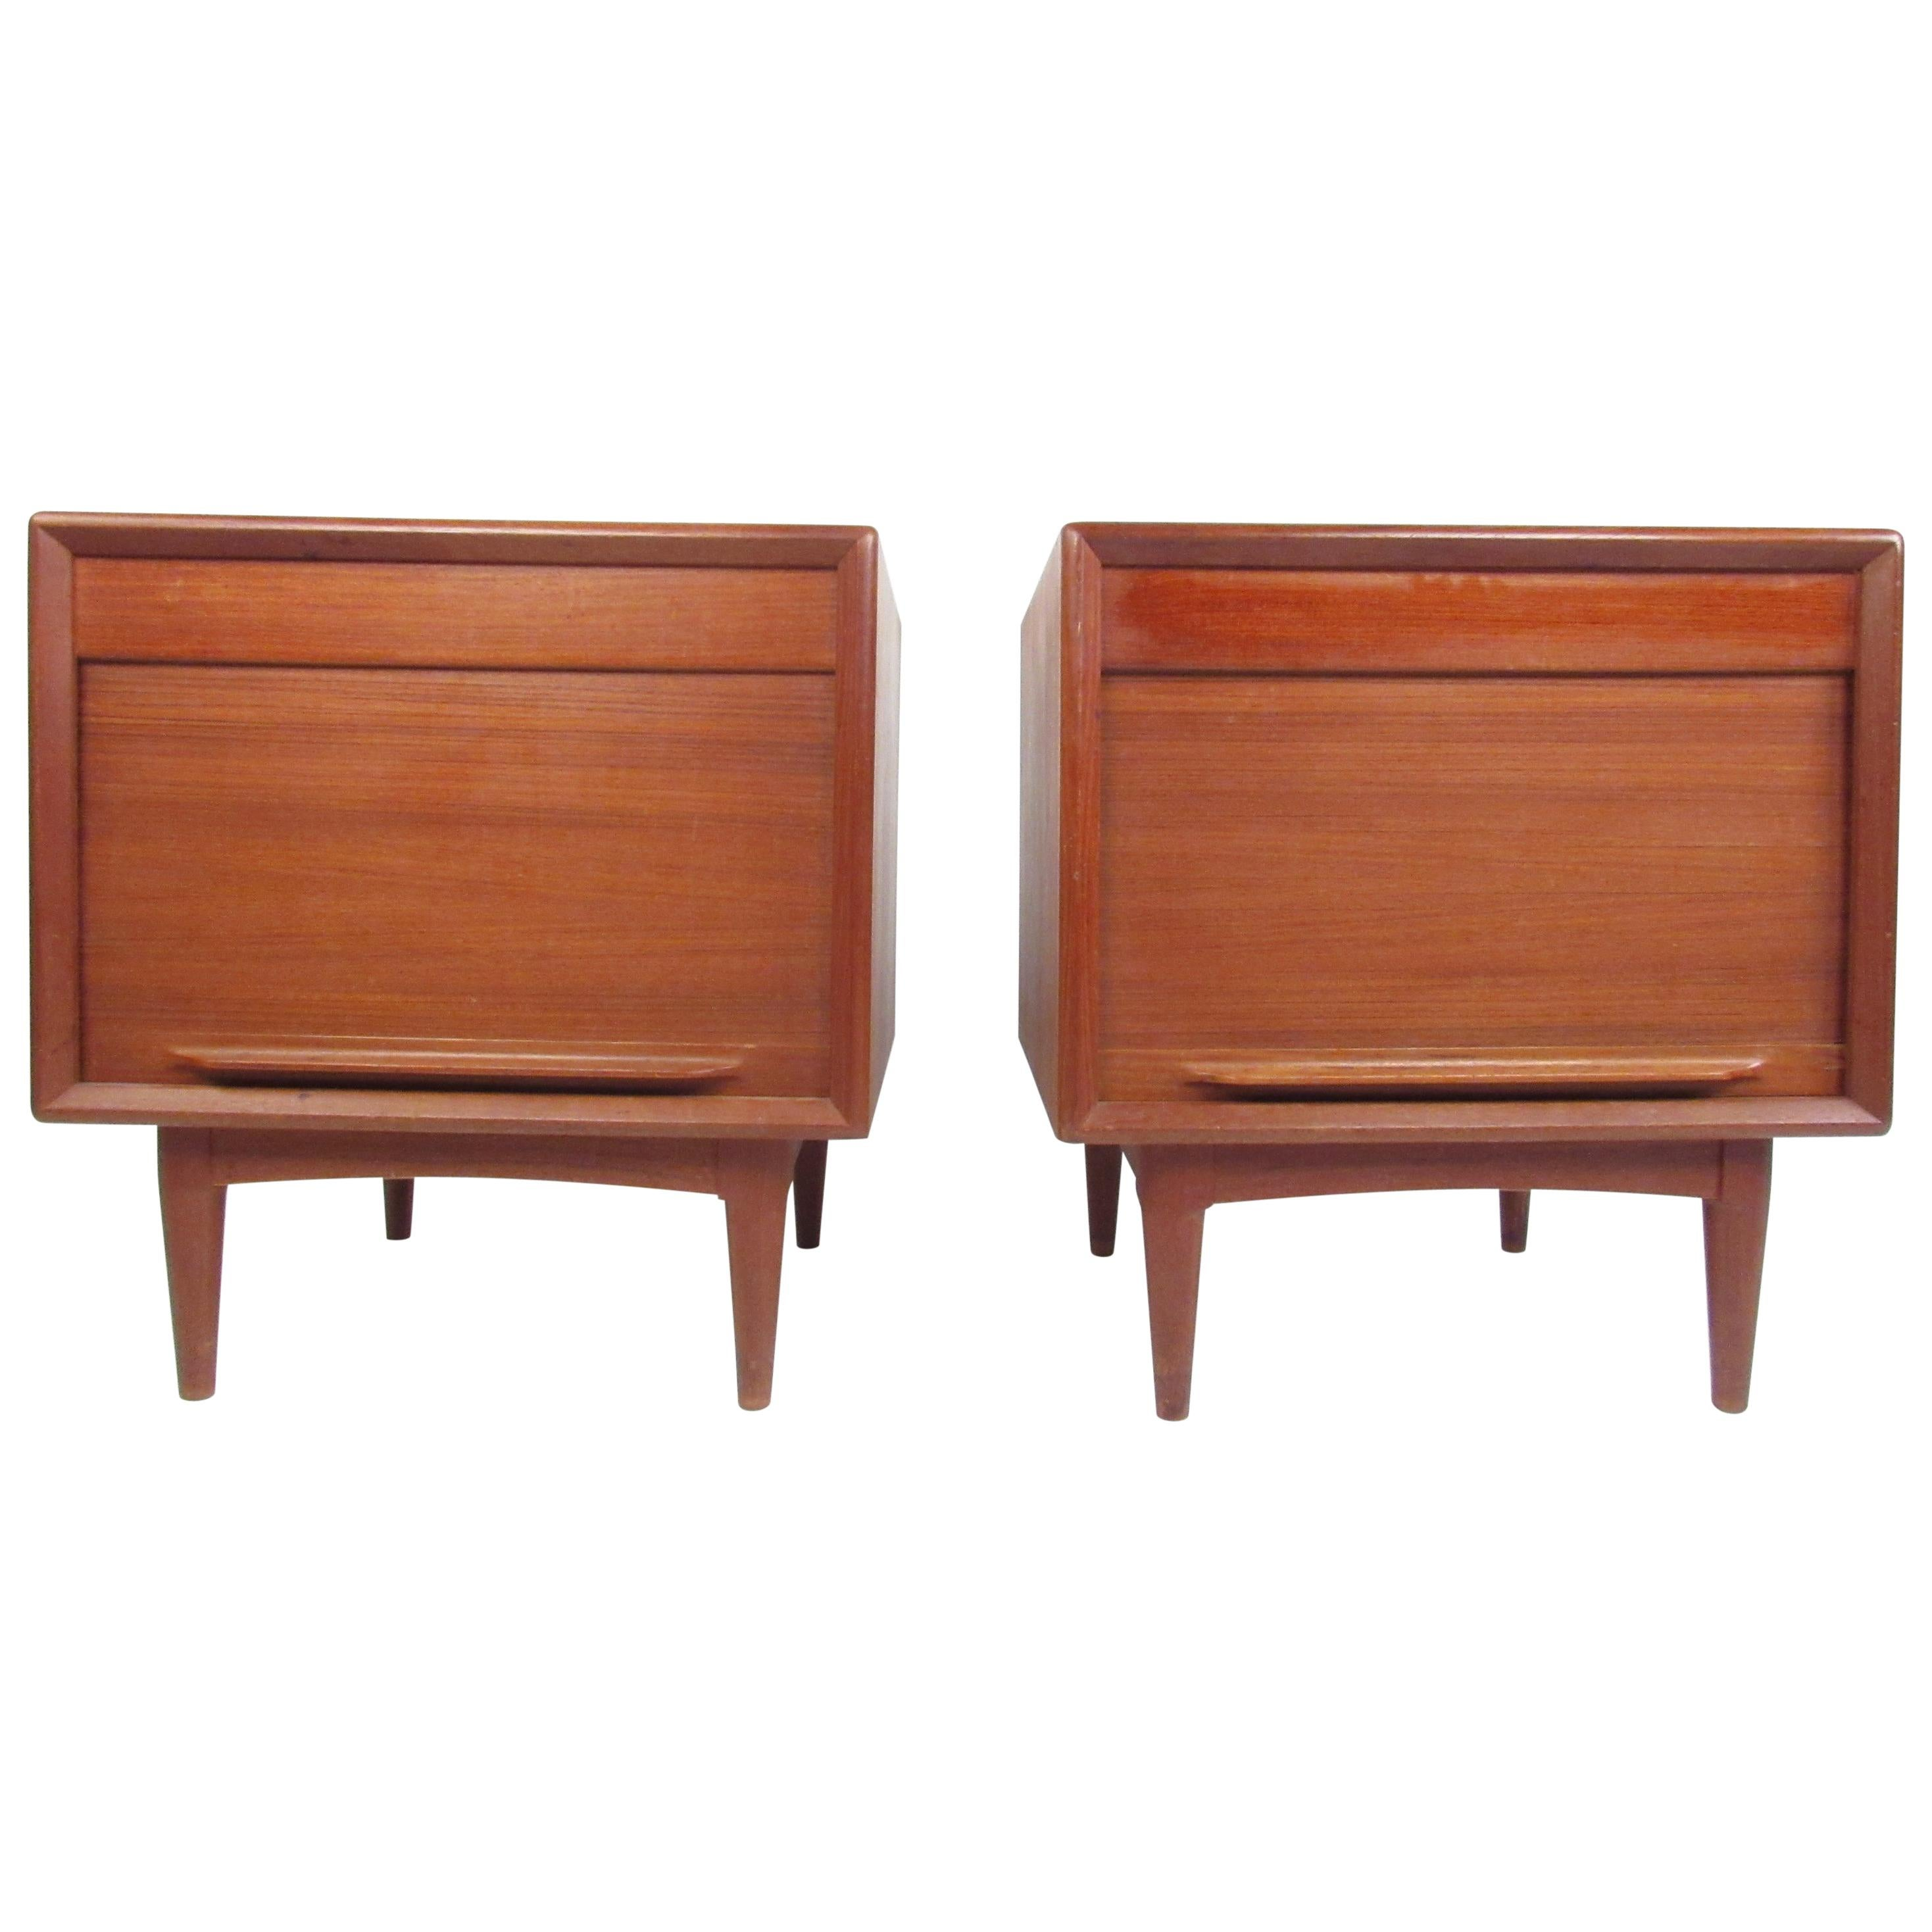 Pair of Danish Modern Tambour Nightstands by Falster